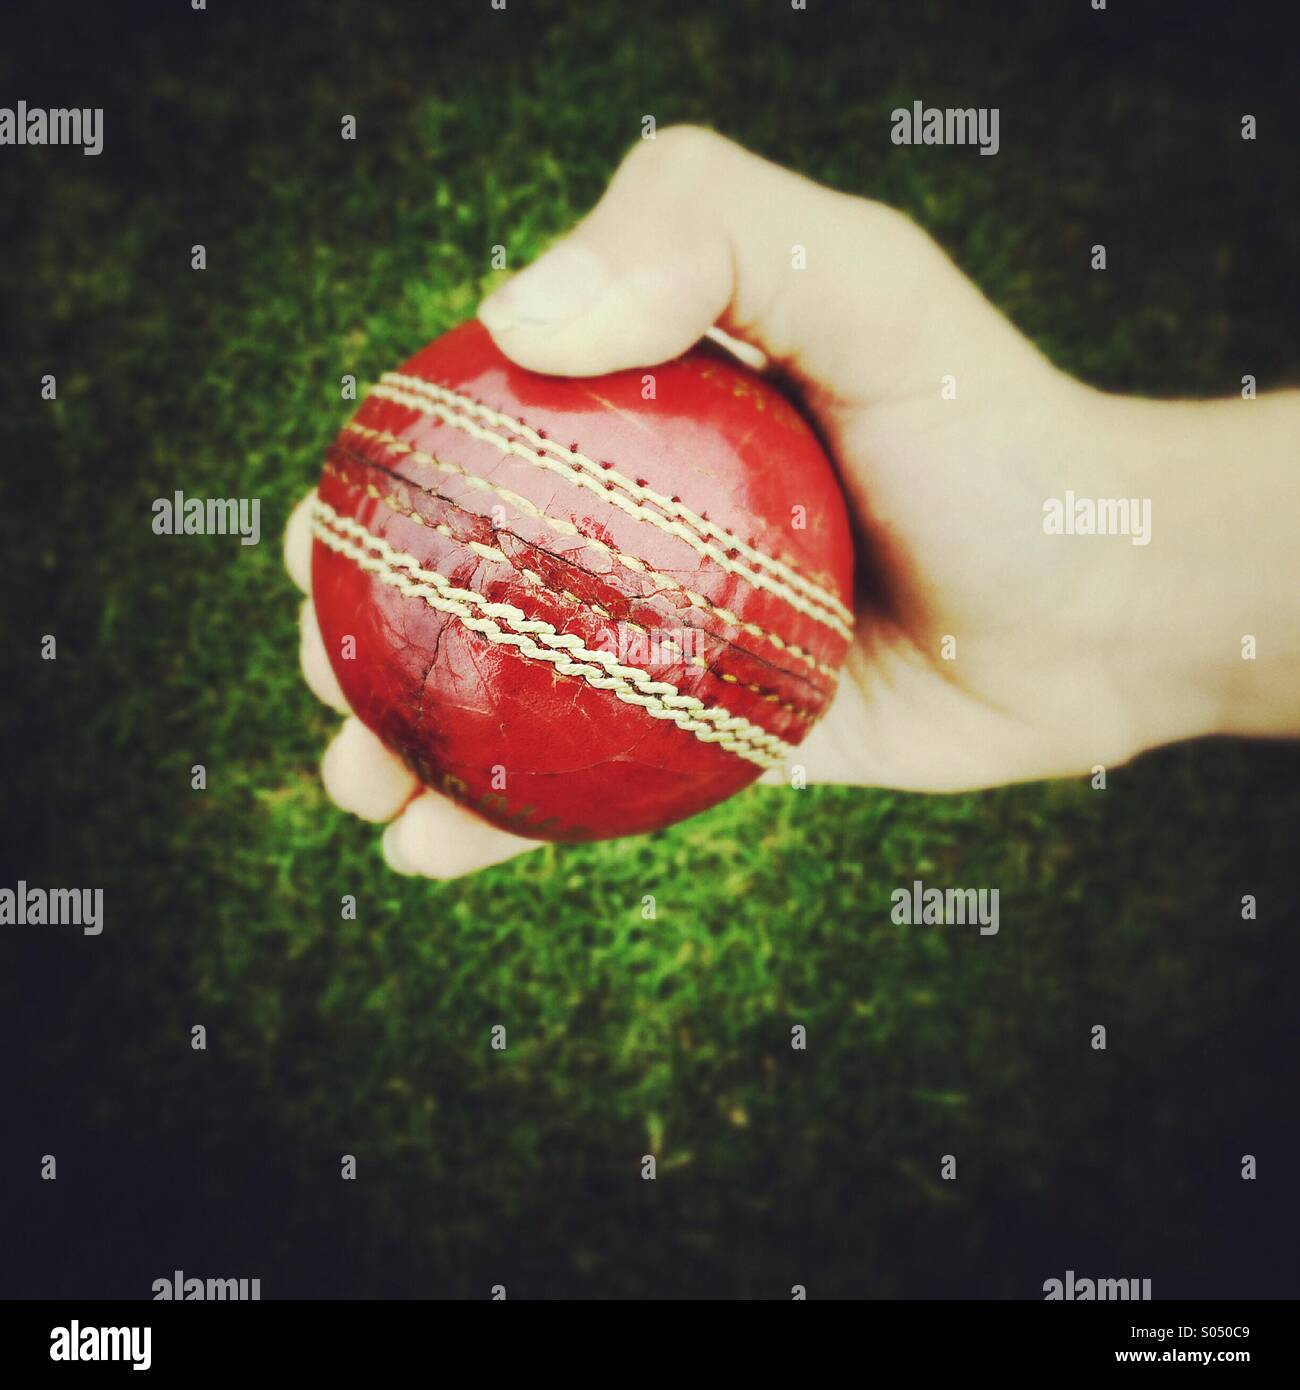 Tenant une balle de cricket Photo Stock